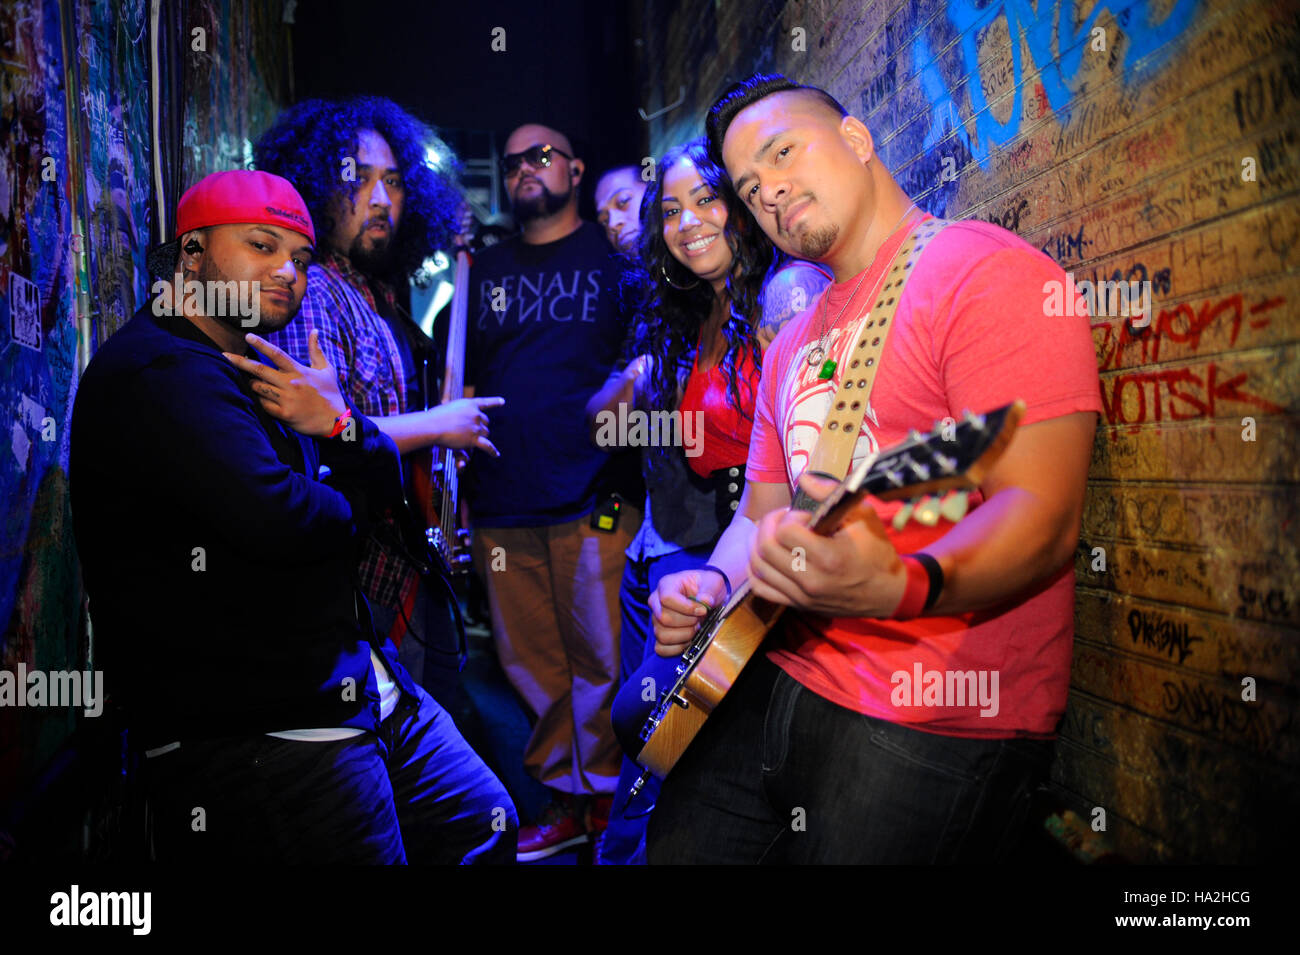 Common Kings portrait behind the scenes at the House of Blues Sunset in West Hollywood, California. - Stock Image